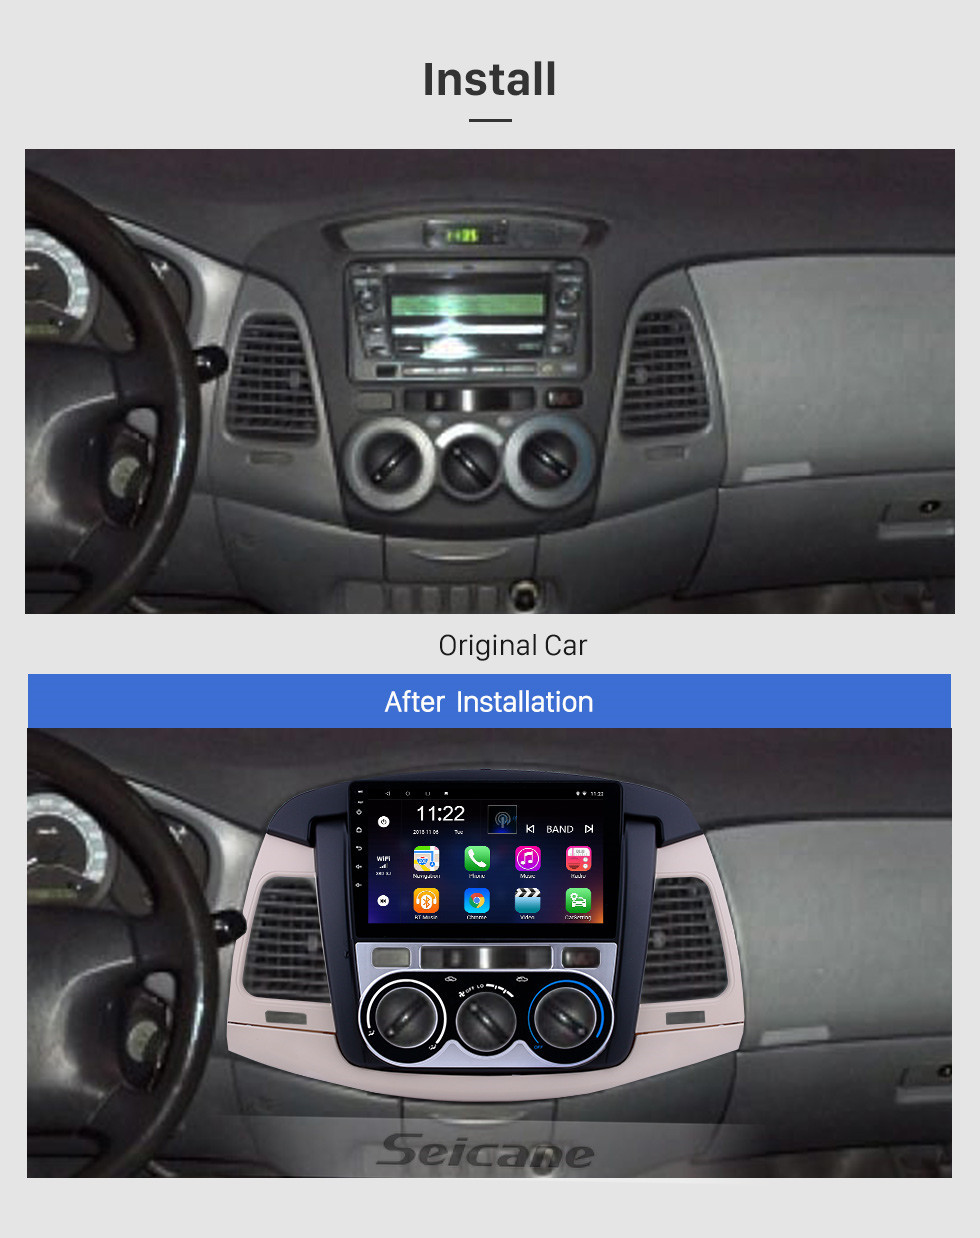 Seicane Android 10.0 9 inch Touchscreen GPS Navigation Radio for 2007-2011 Toyota Innova Manual A/C with Bluetooth USB WIFI support Carplay SWC Rear camera